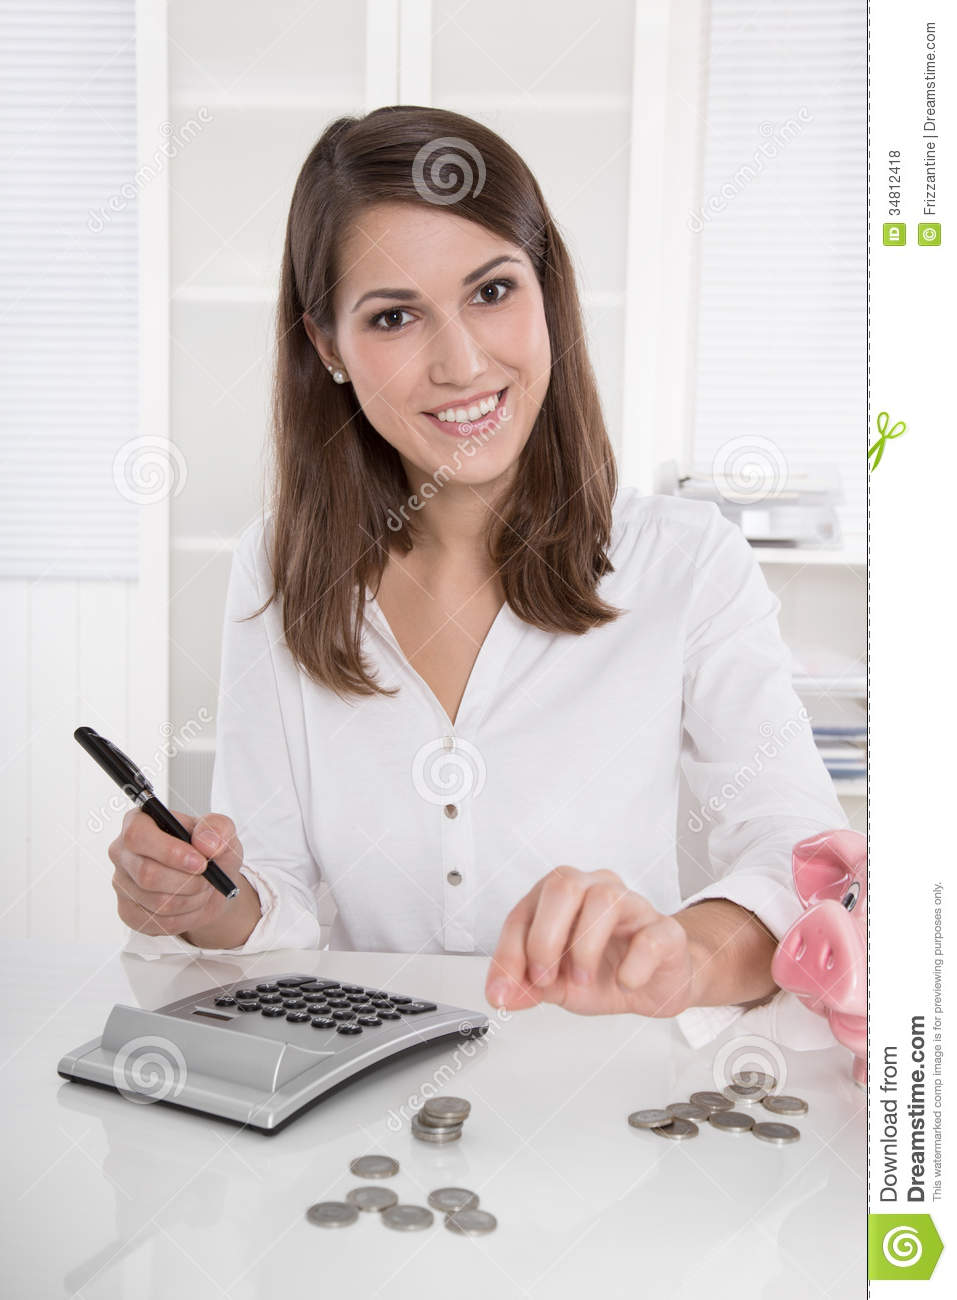 Accounting Pretty Businesswoman In White Sitting At Desk